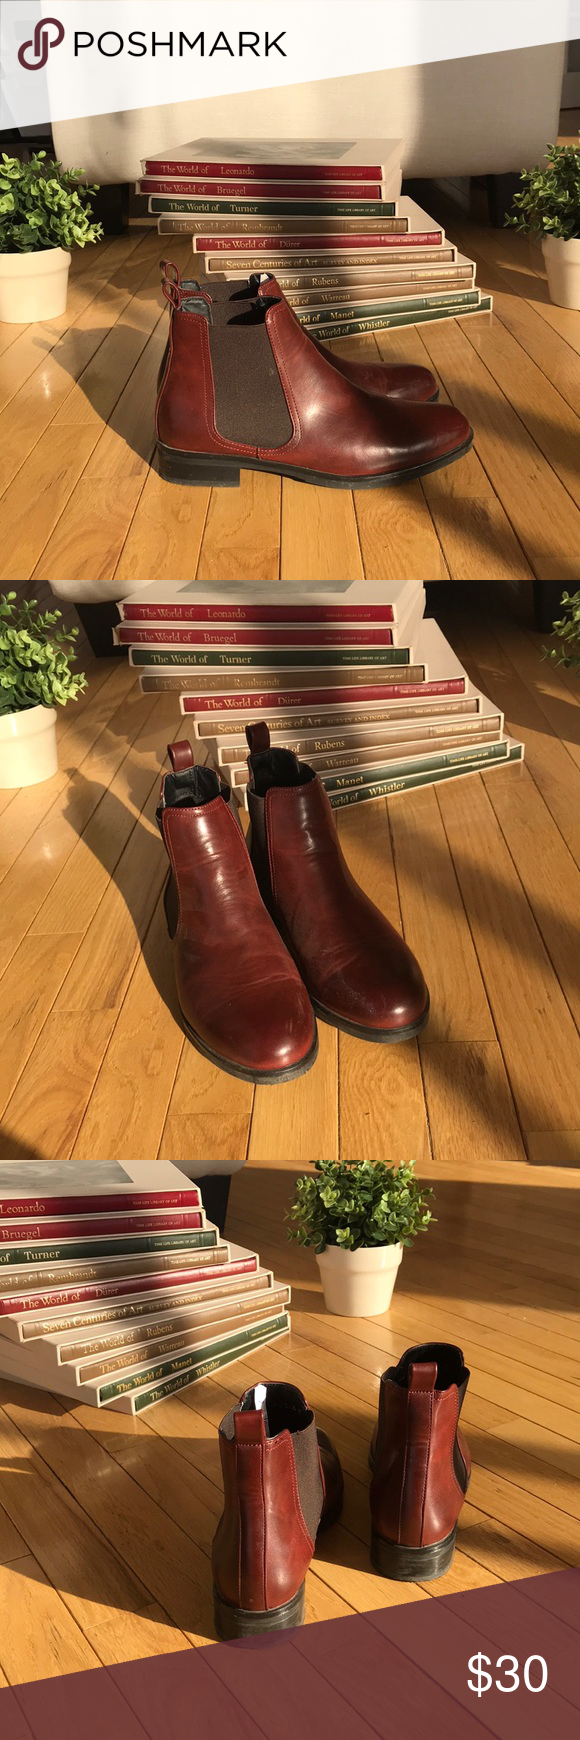 4ac6d79dfe4ea0 Akira Chelsea Boots (Maroon red brown)- worn once Beautiful Chelsea boots  from Akira